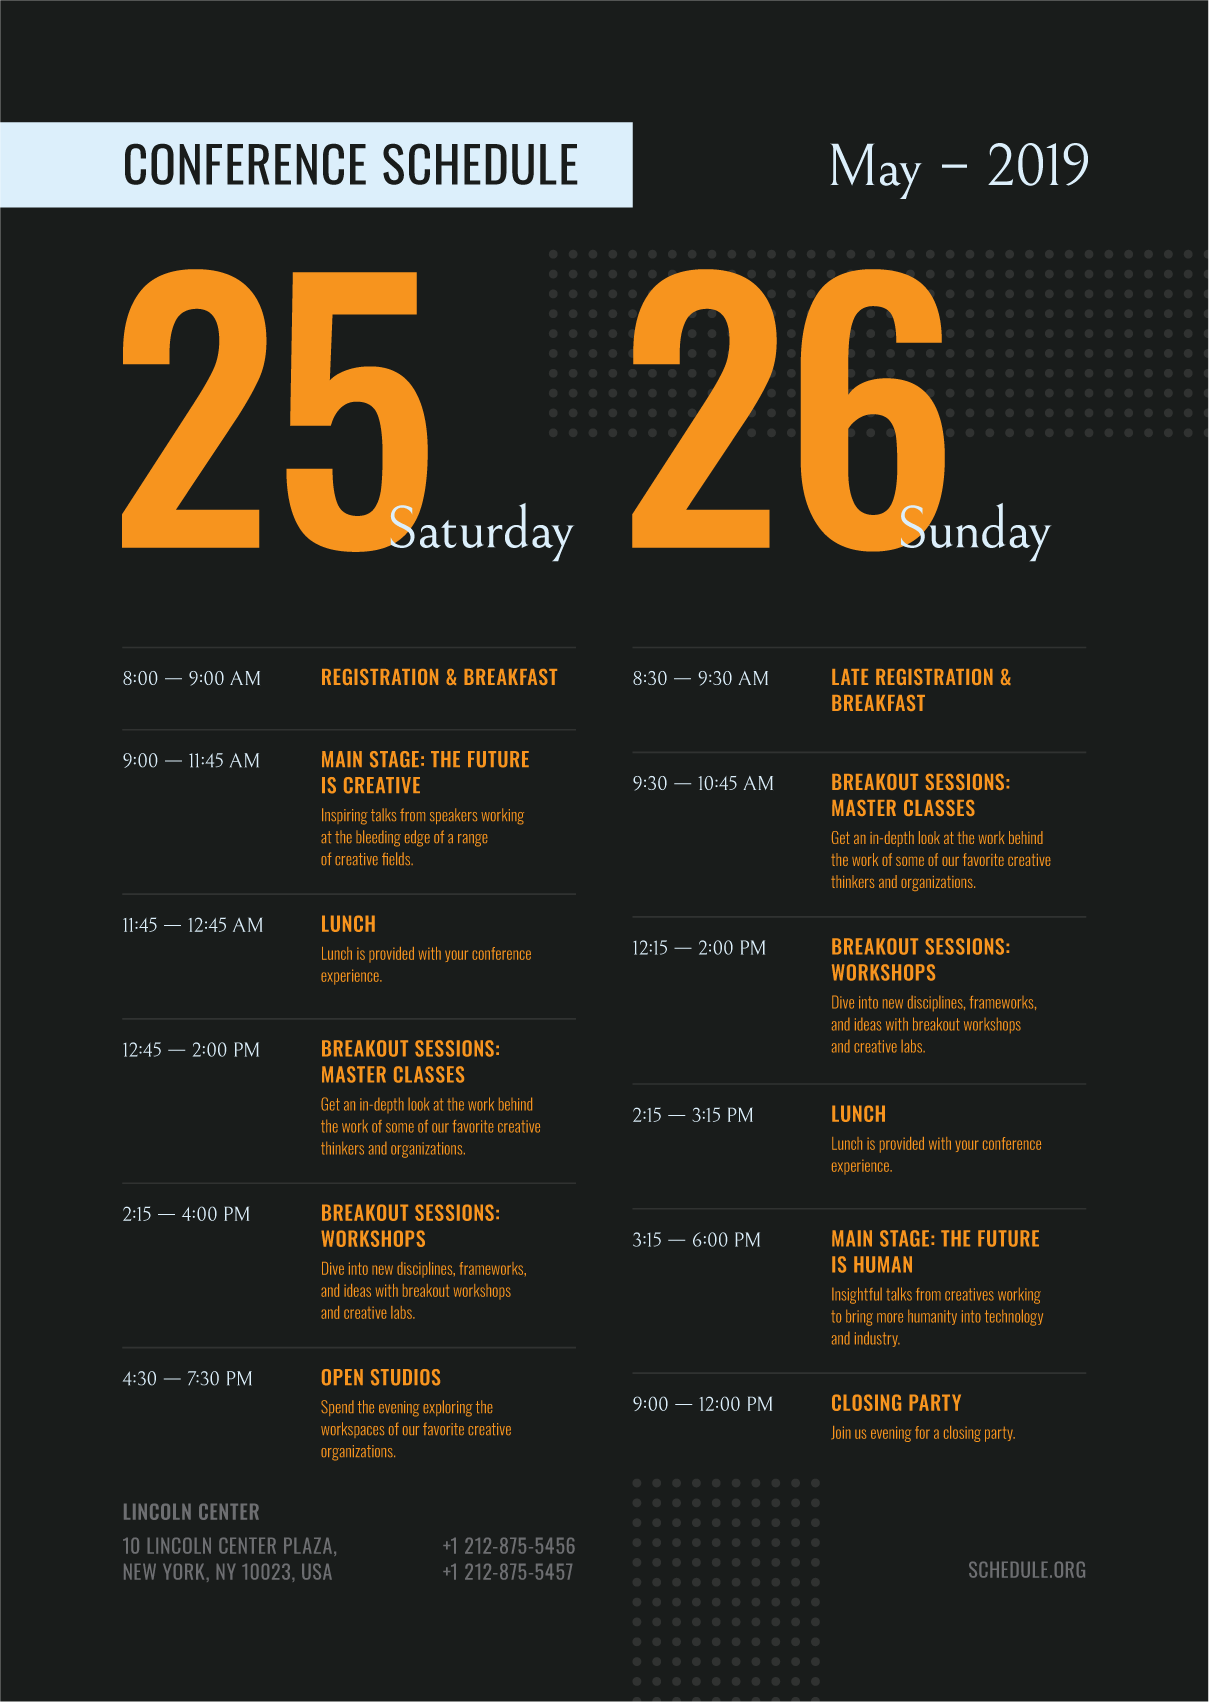 Conference Schedule Poster Template Event Schedule Design Conference Design Event Poster Design